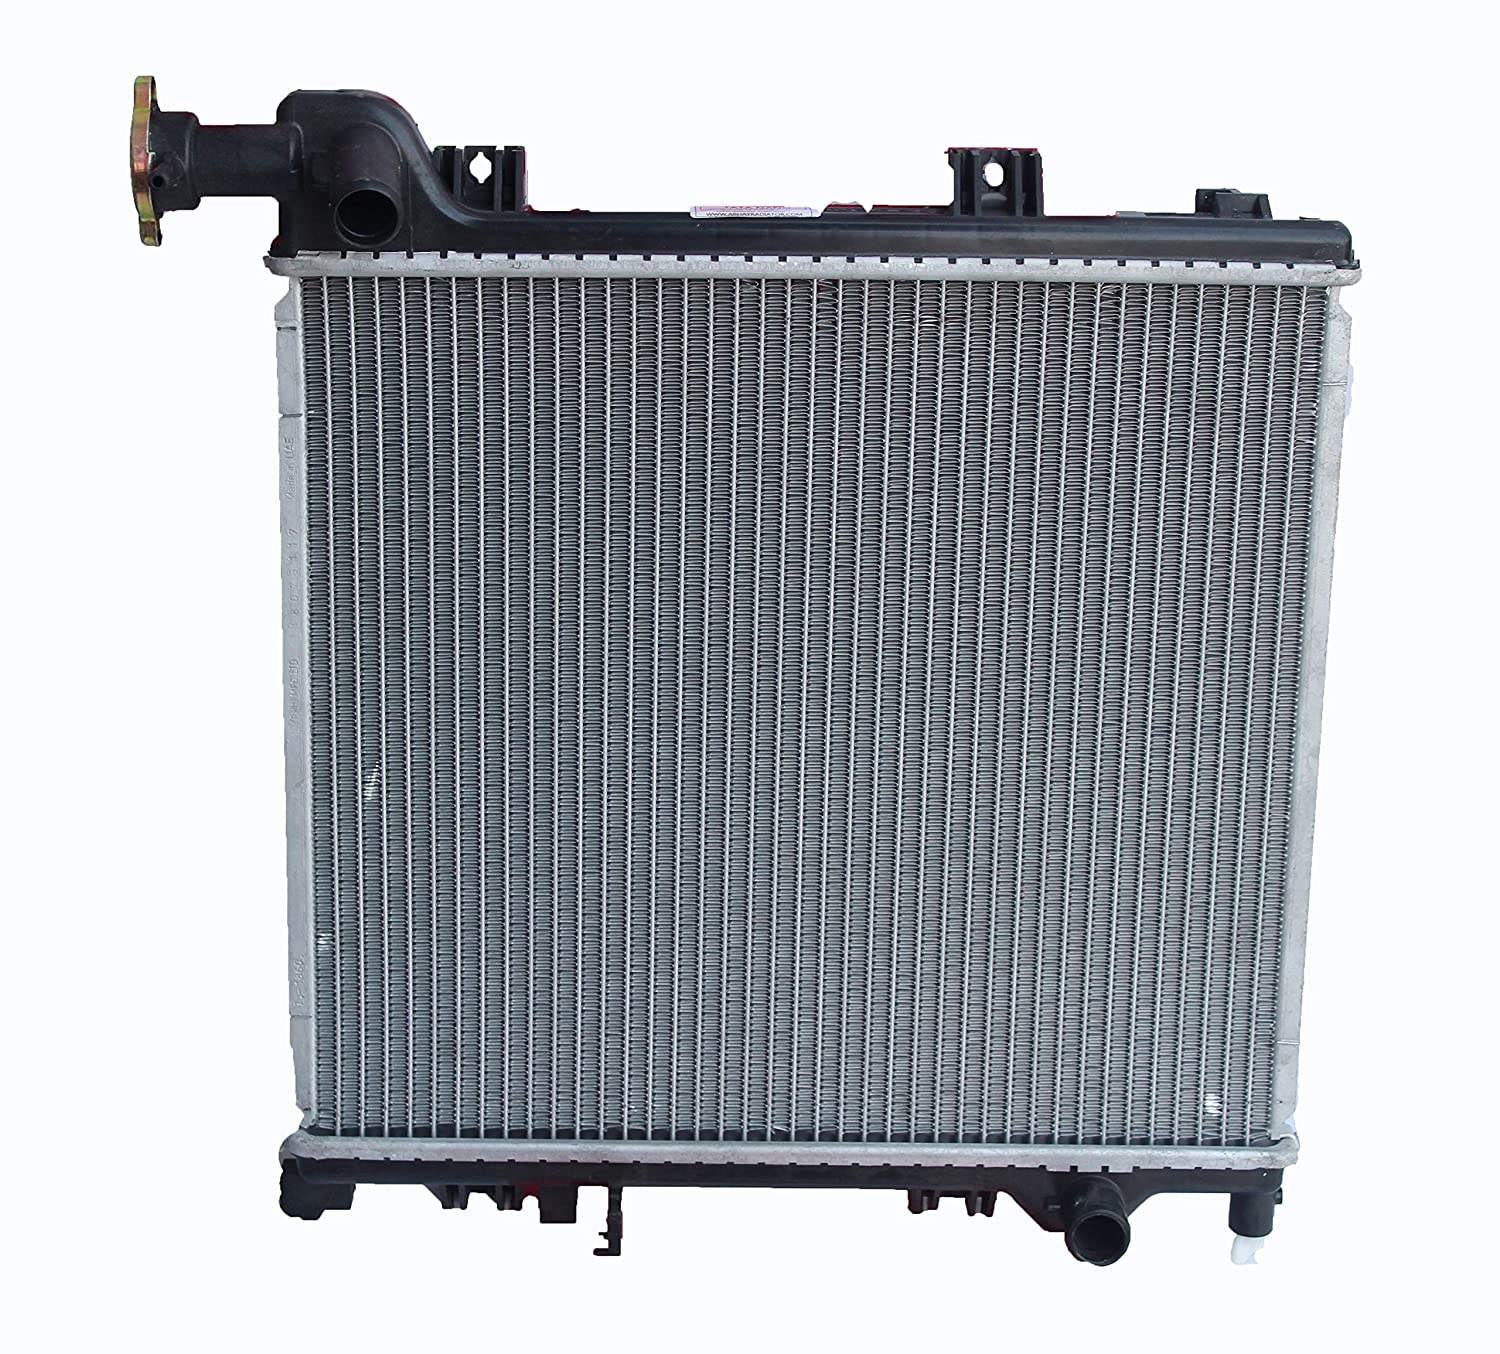 Full Aluminum RX330 Car 916539-22-03 Radiator for LEXUS RX 330 Car